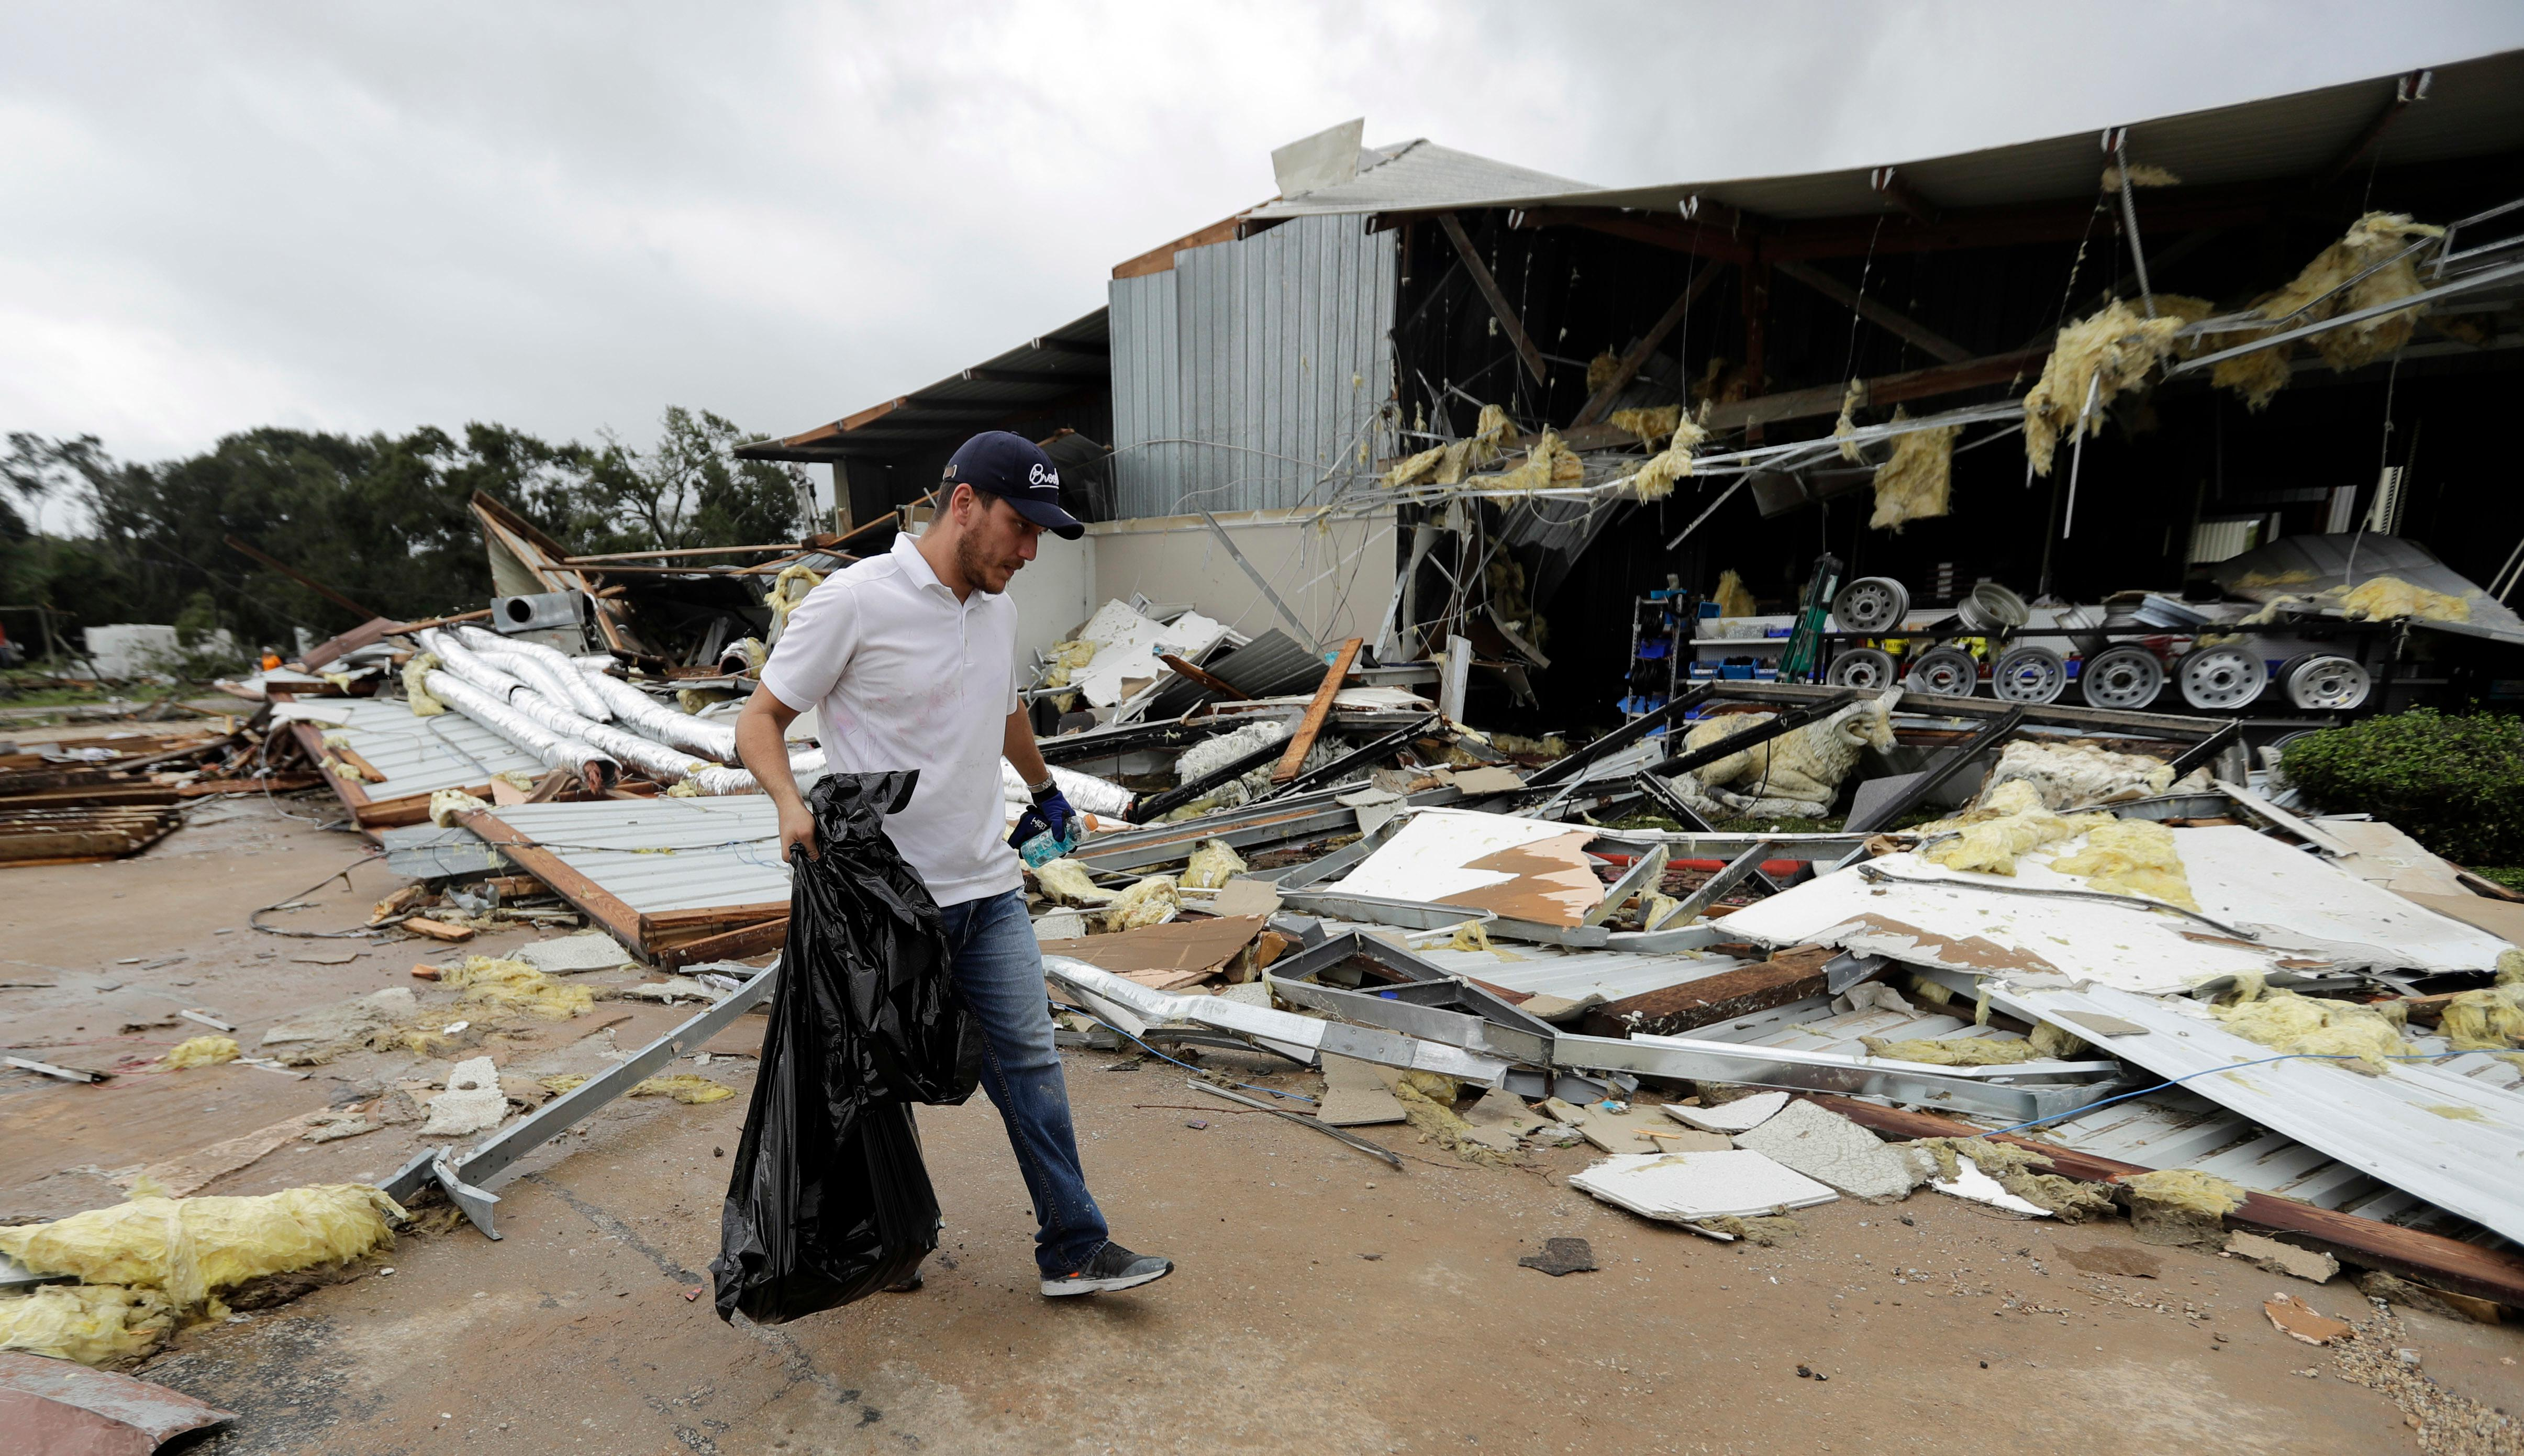 Miguel Debernardis cleans up debris in the aftermath of Hurricane Harvey Saturday, Aug. 26, 2017, in Katy, Texas.   Harvey rolled over the Texas Gulf Coast on Saturday, smashing homes and businesses and lashing the shore with wind and rain so intense that drivers were forced off the road because they could not see in front of them. (AP Photo/David J. Phillip)